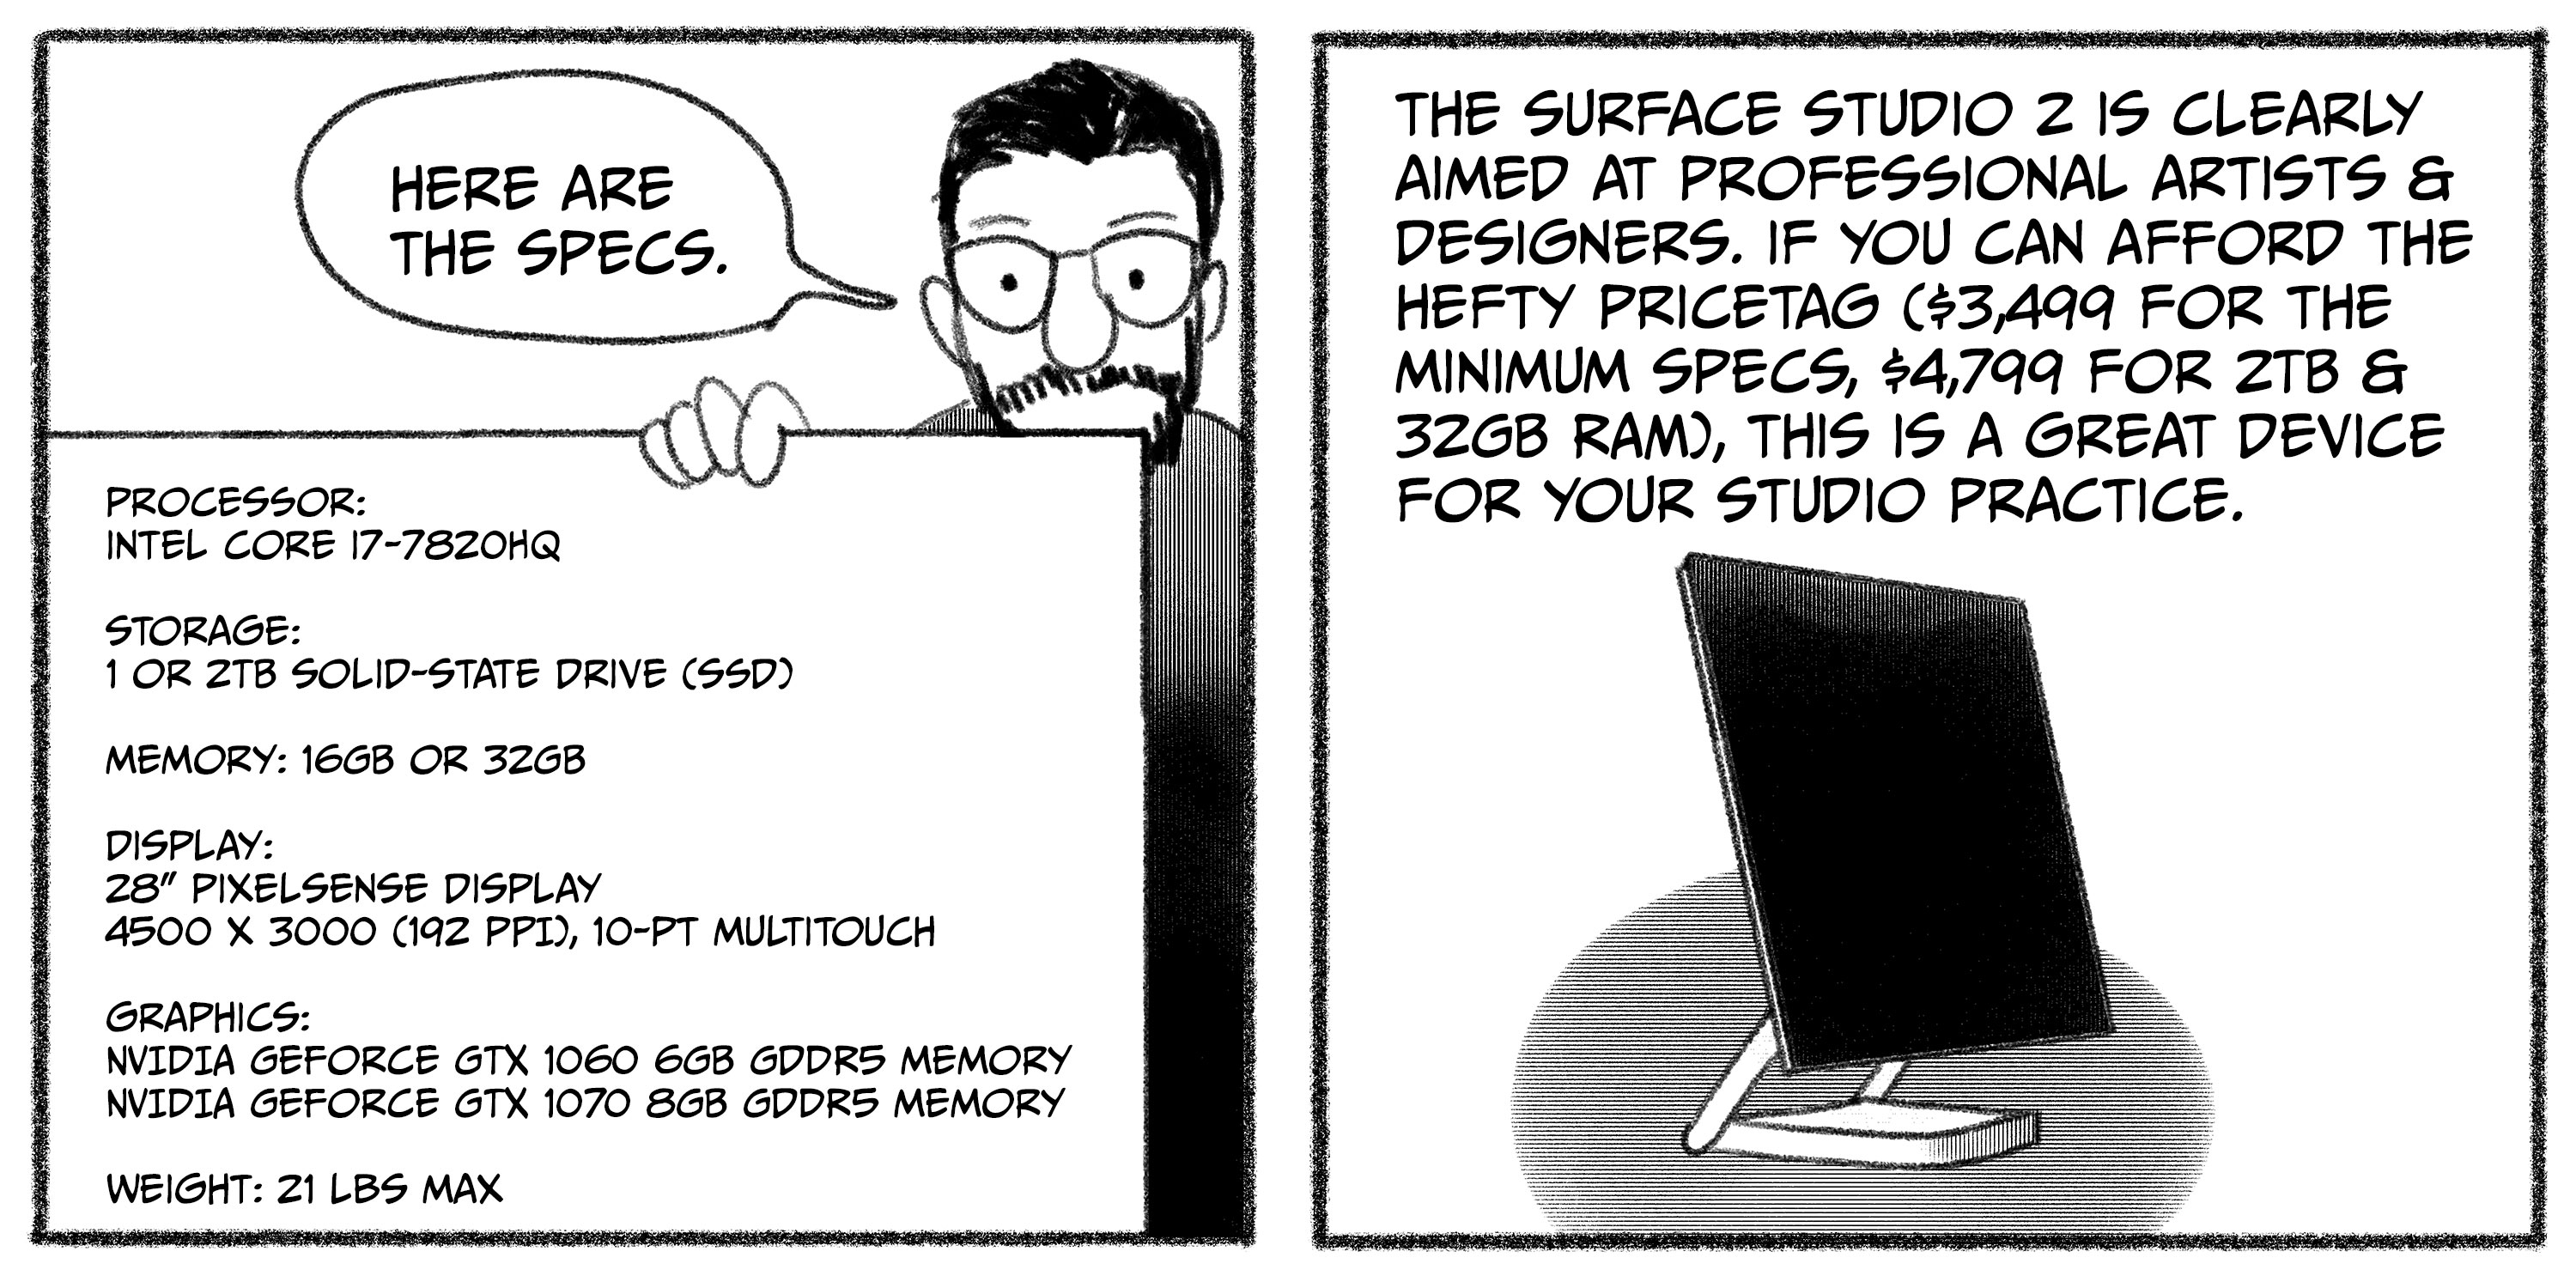 Surface Studio 2 review, panels 11 and 12